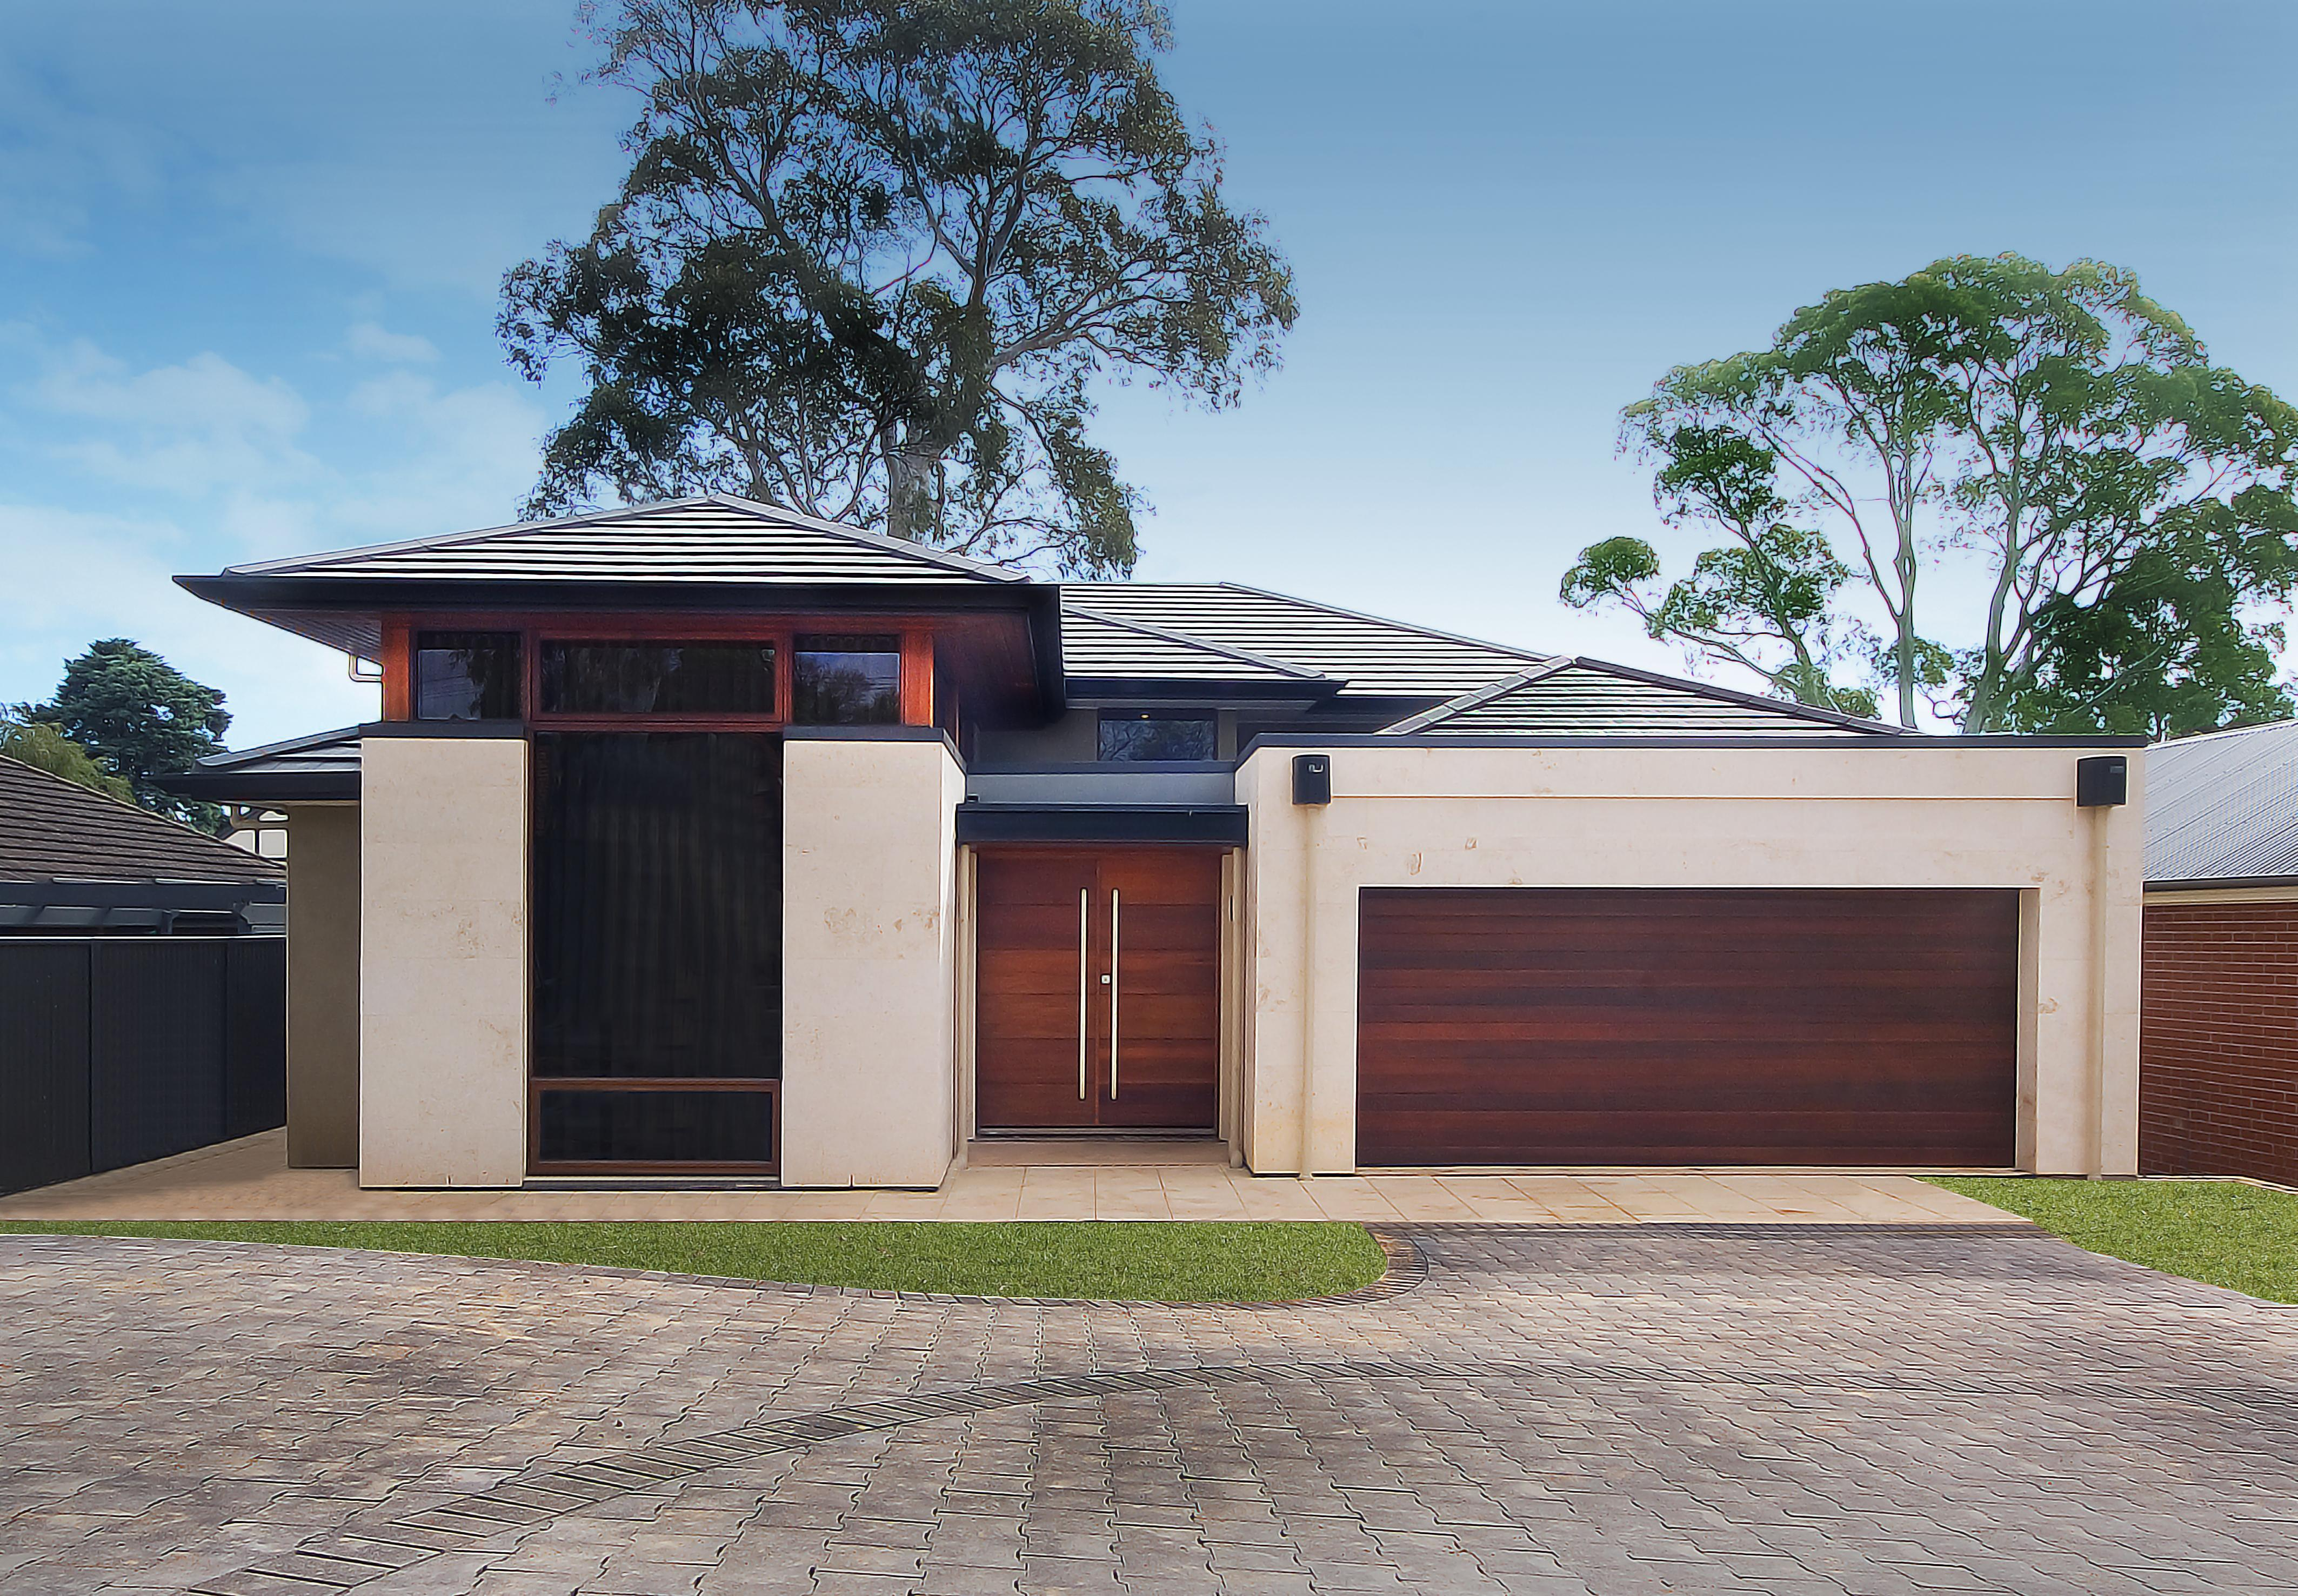 2 Storey House Designs Adelaide Idea Home And